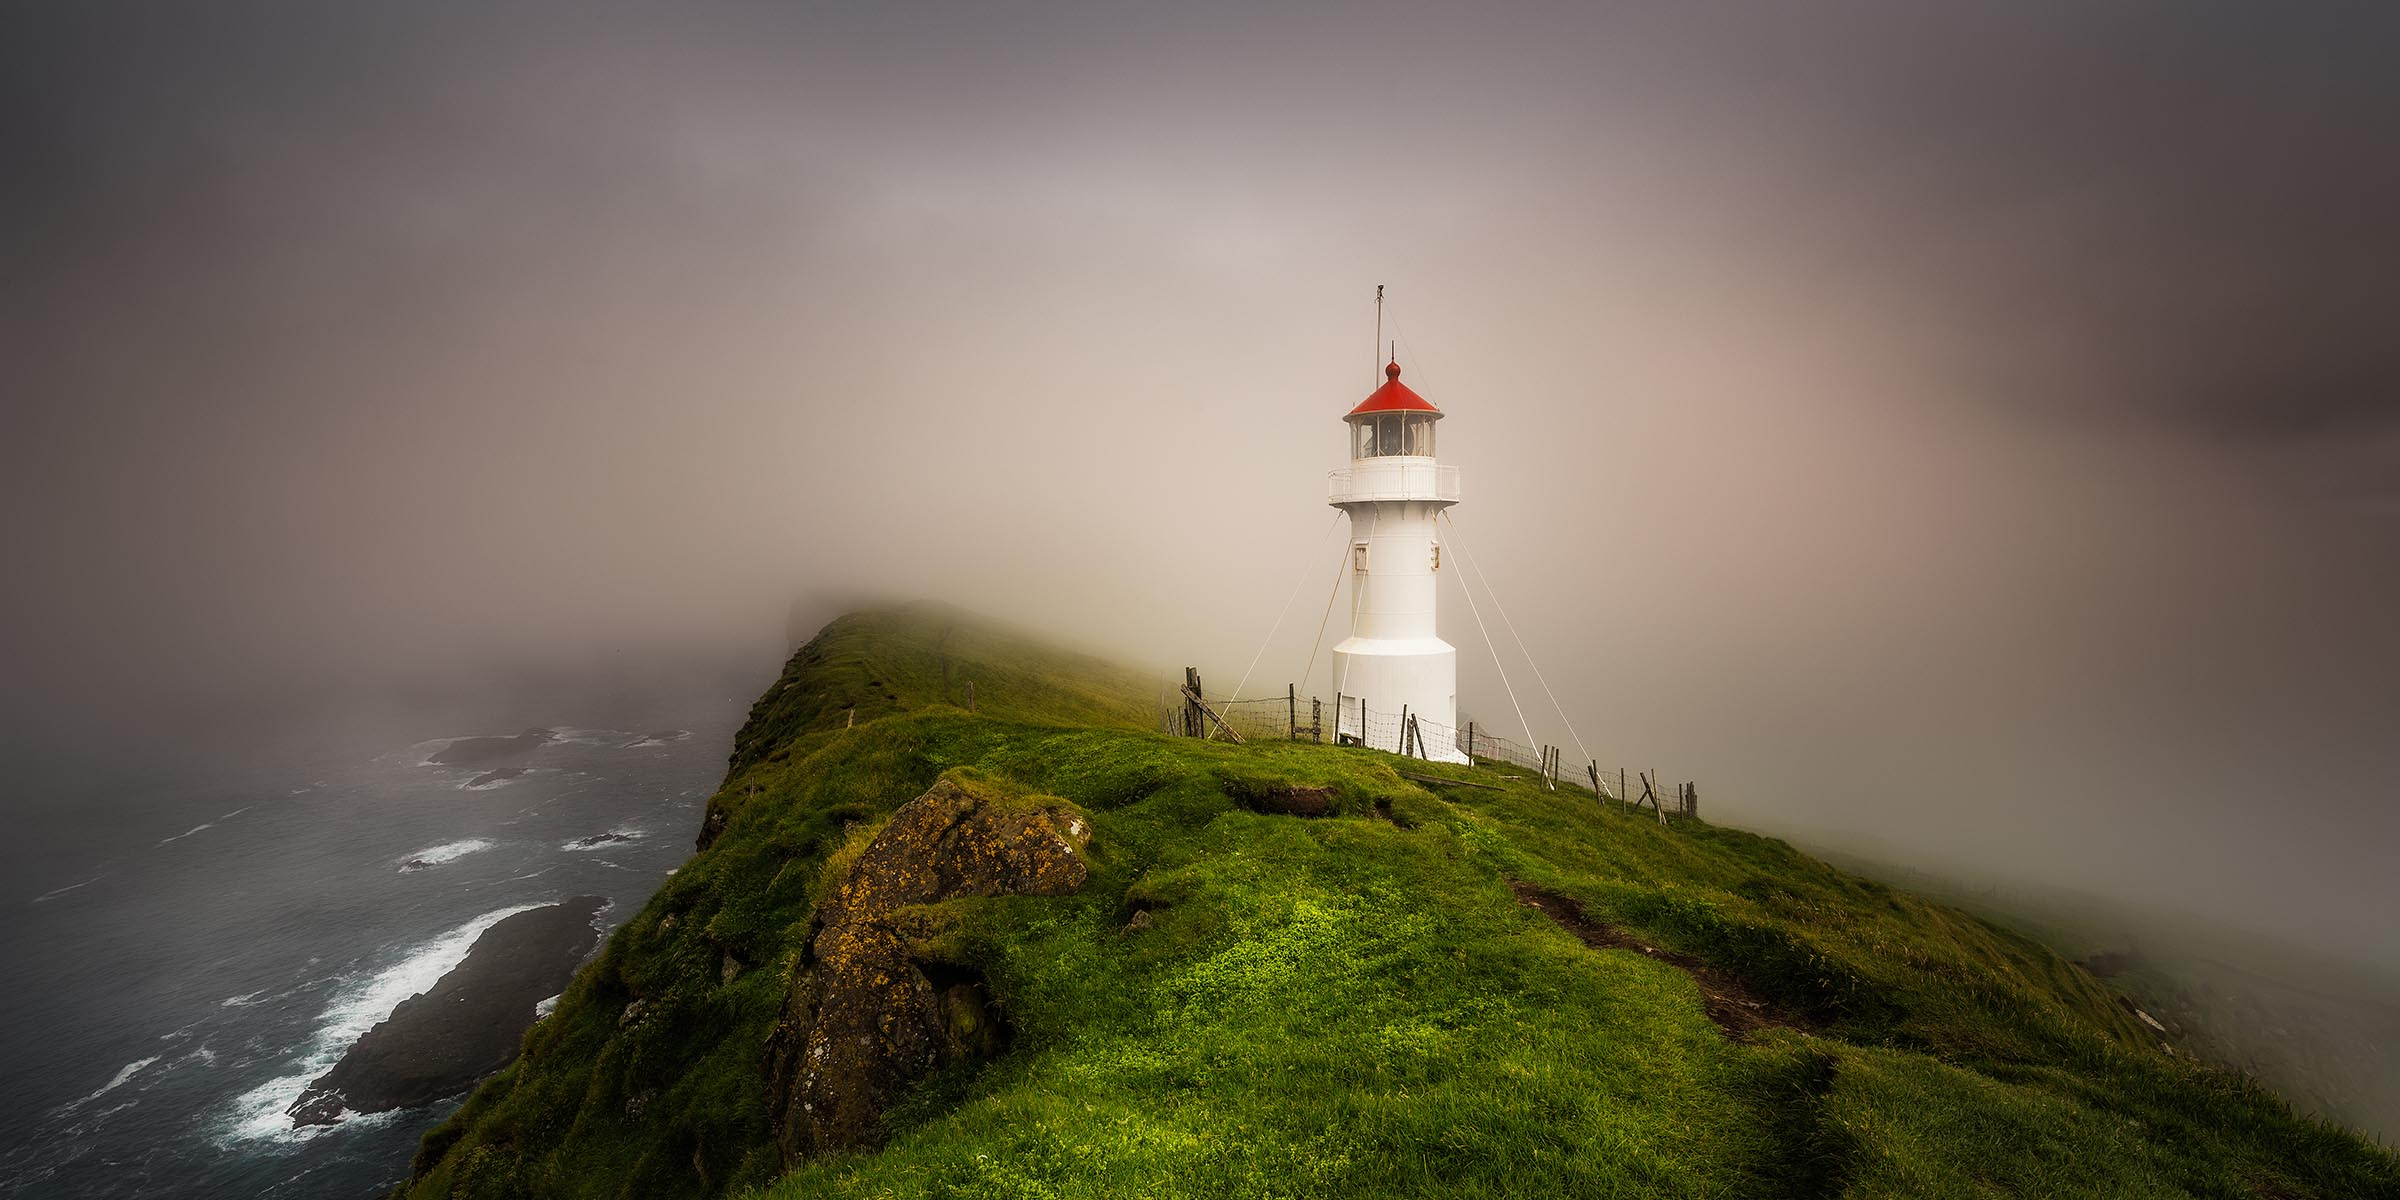 Photograph of Mykines Lighthouse in Mykines, Faroe Islands by Brent Goldman Photography